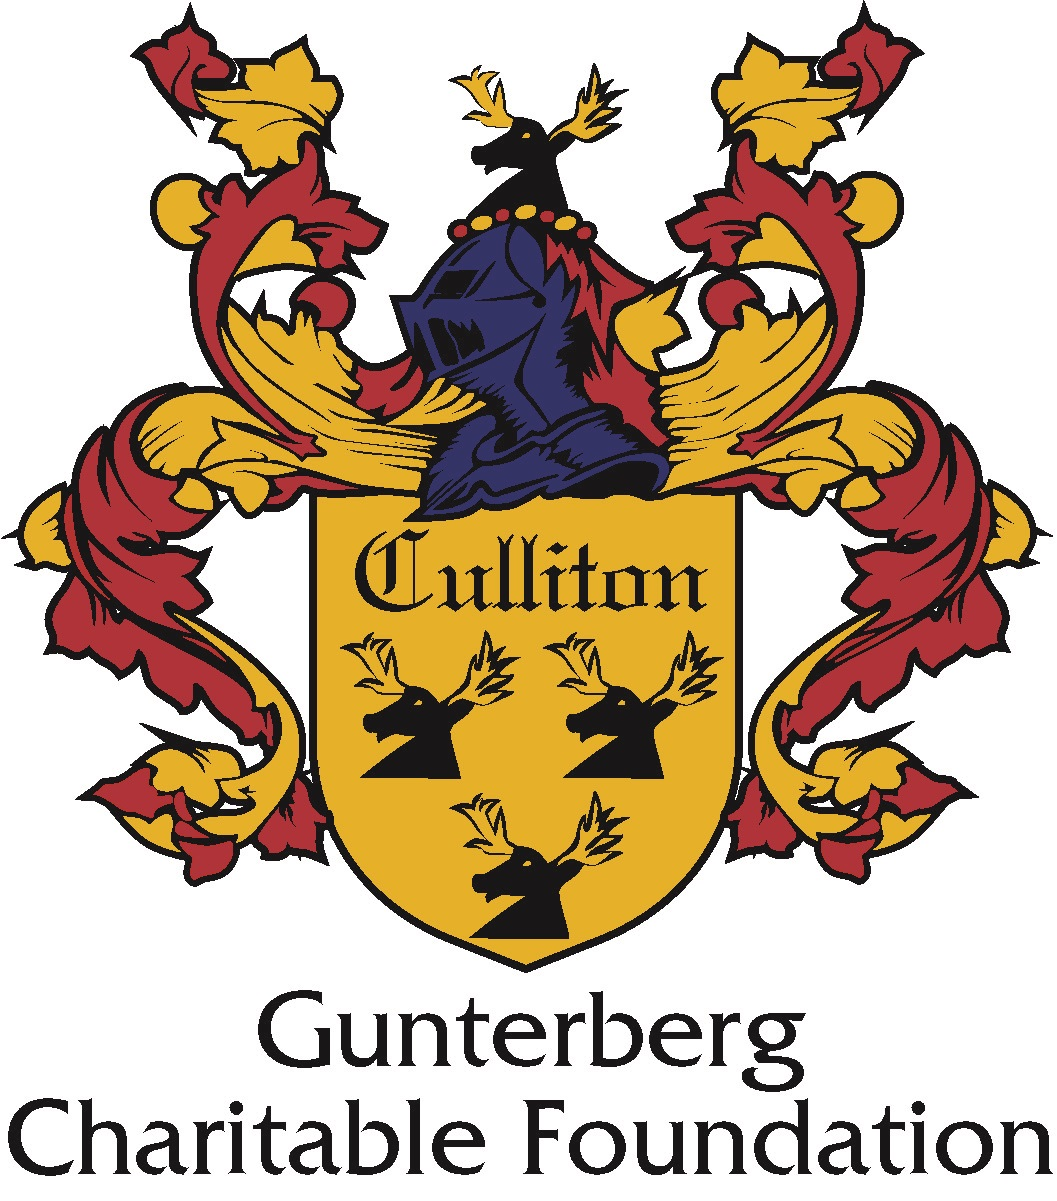 Sponsor: Gunterberg Charitable Foundation